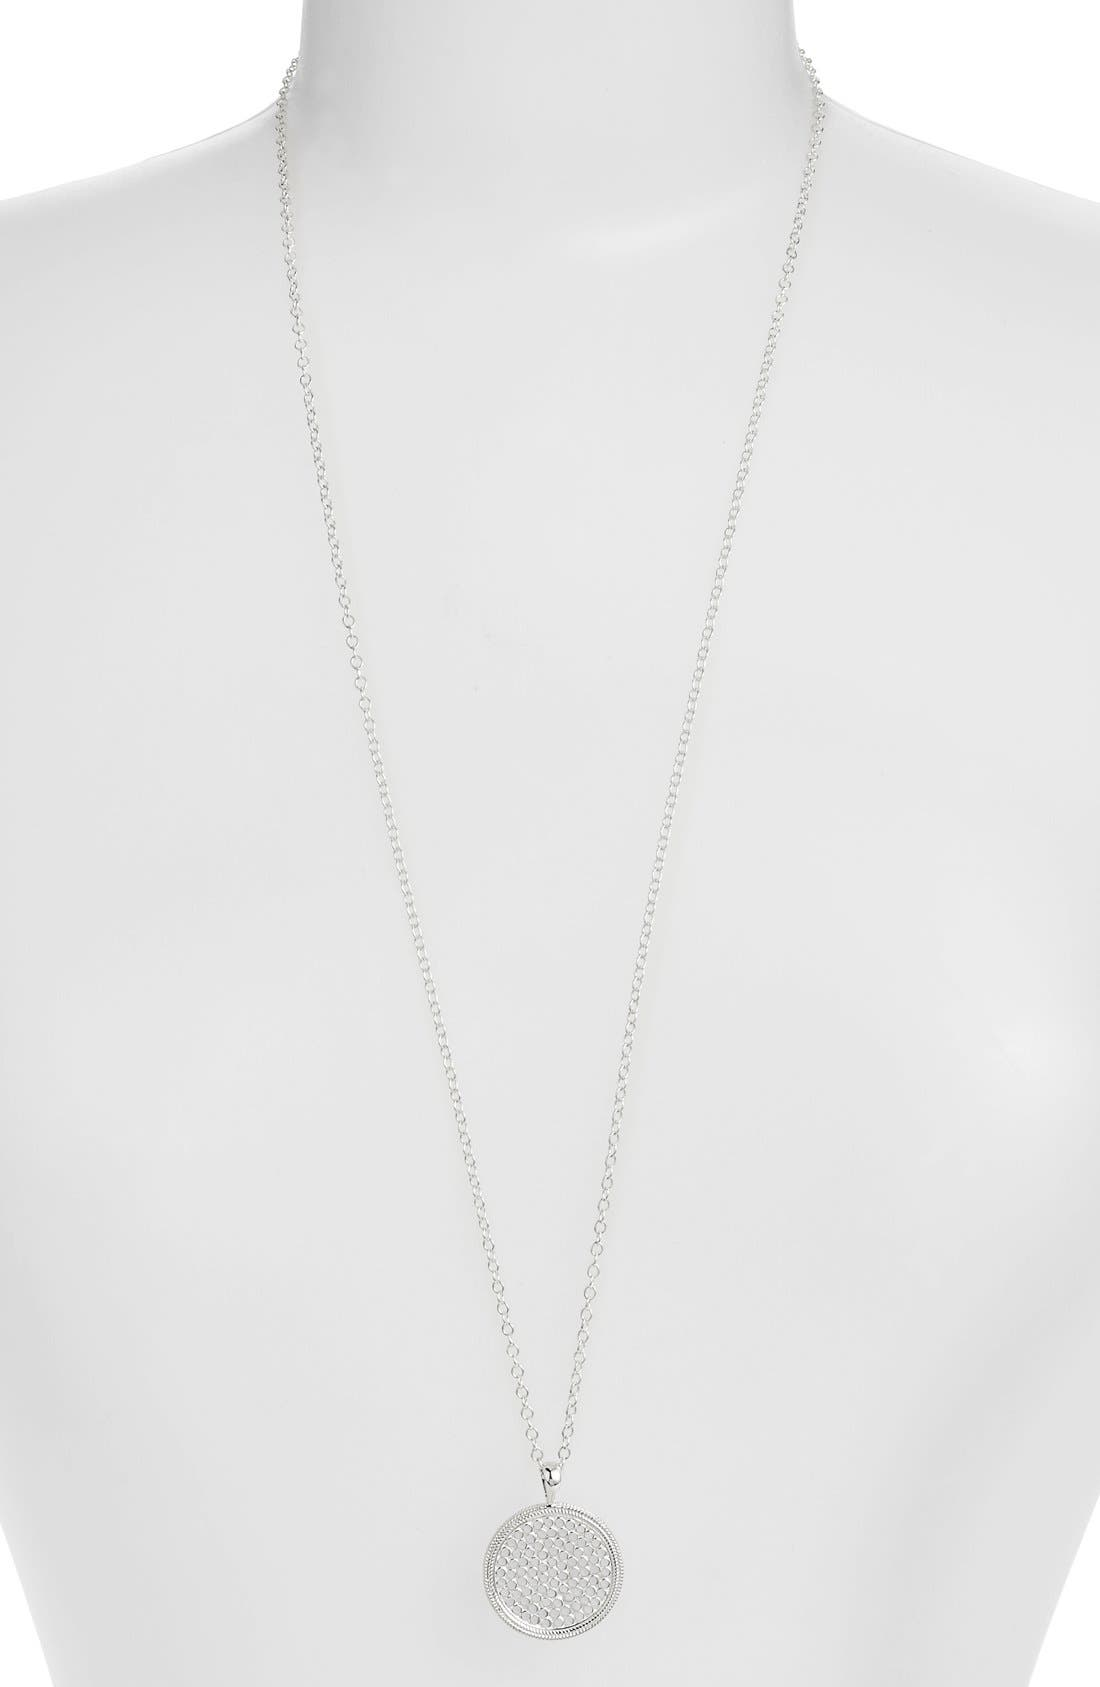 Alternate Image 1 Selected - Anna Beck 'Gili' Pendant Necklace